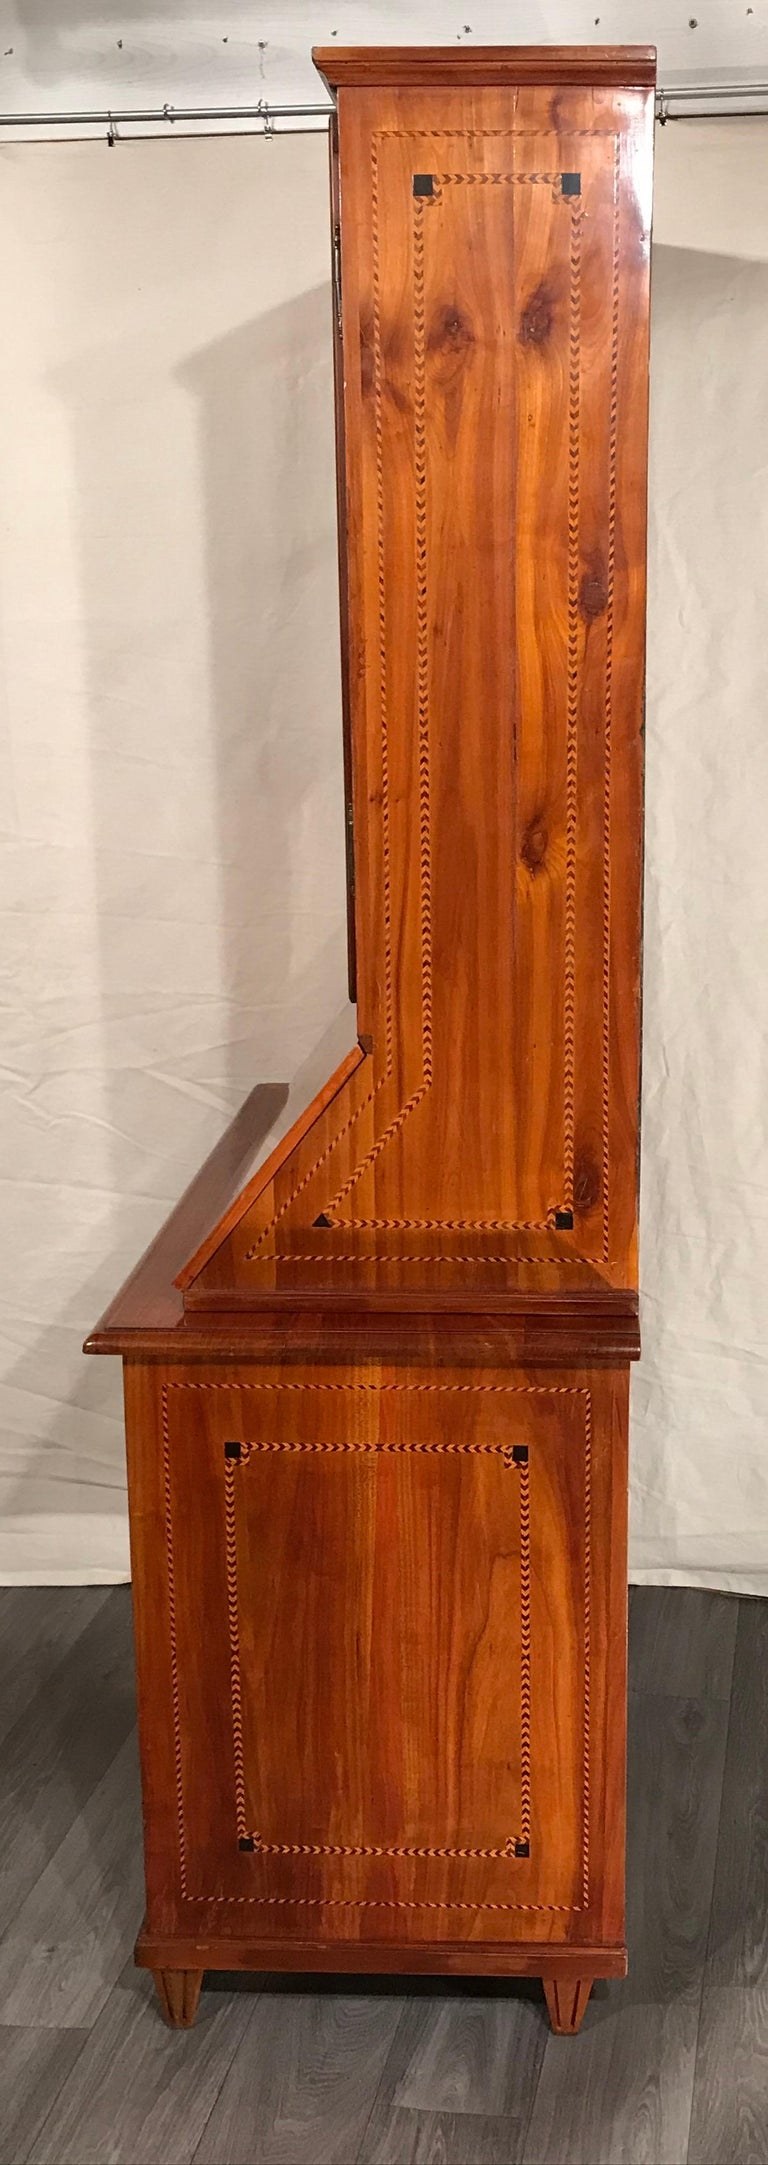 Louis XVI Secretary Bookcase, South German 1780, Cherry In Good Condition For Sale In Belmont, MA